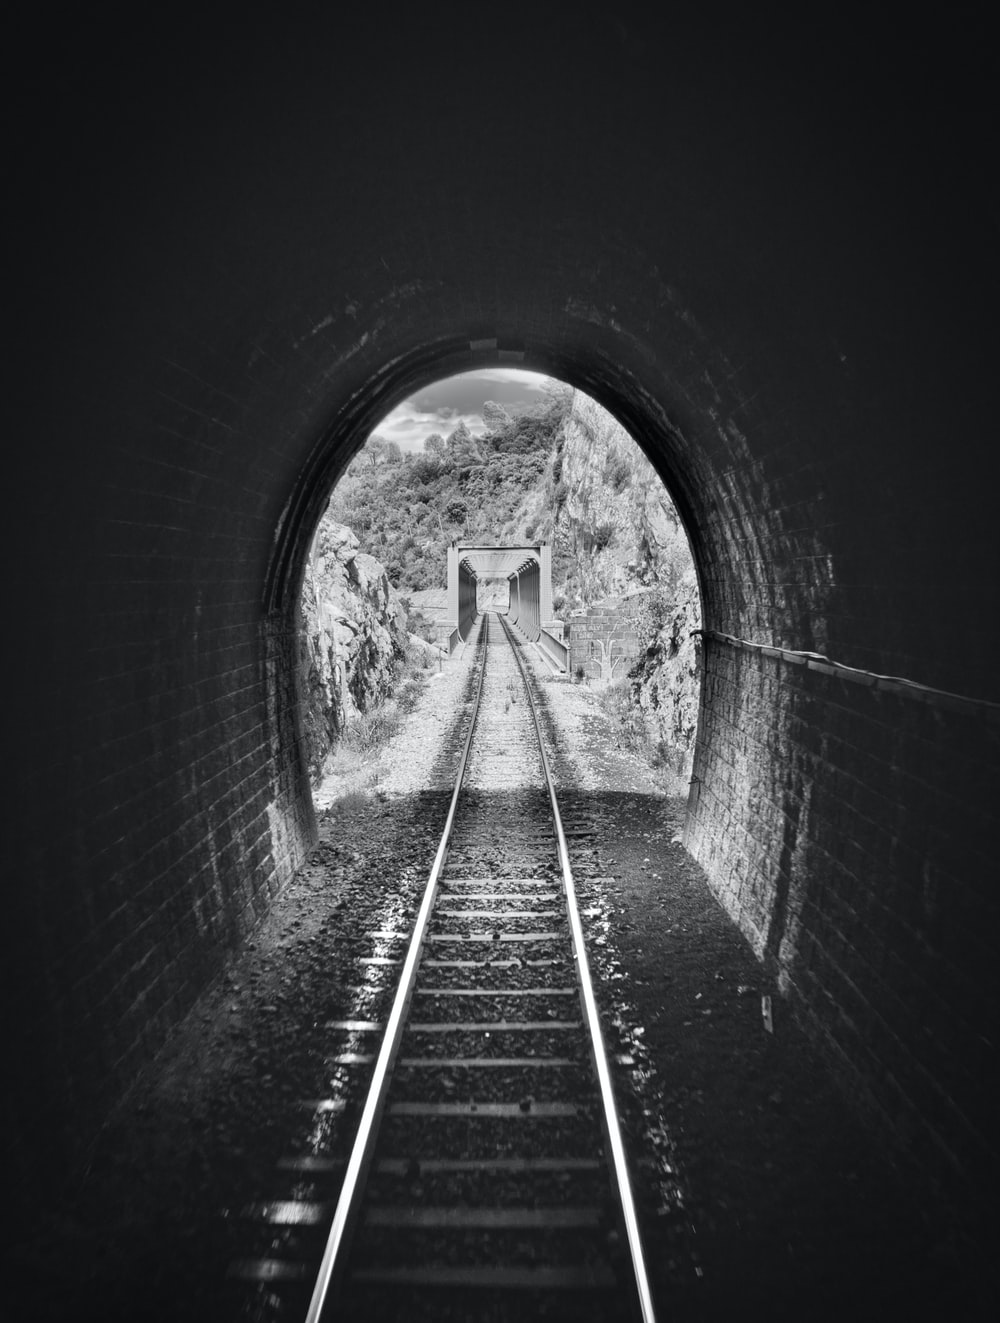 railway in tunnel